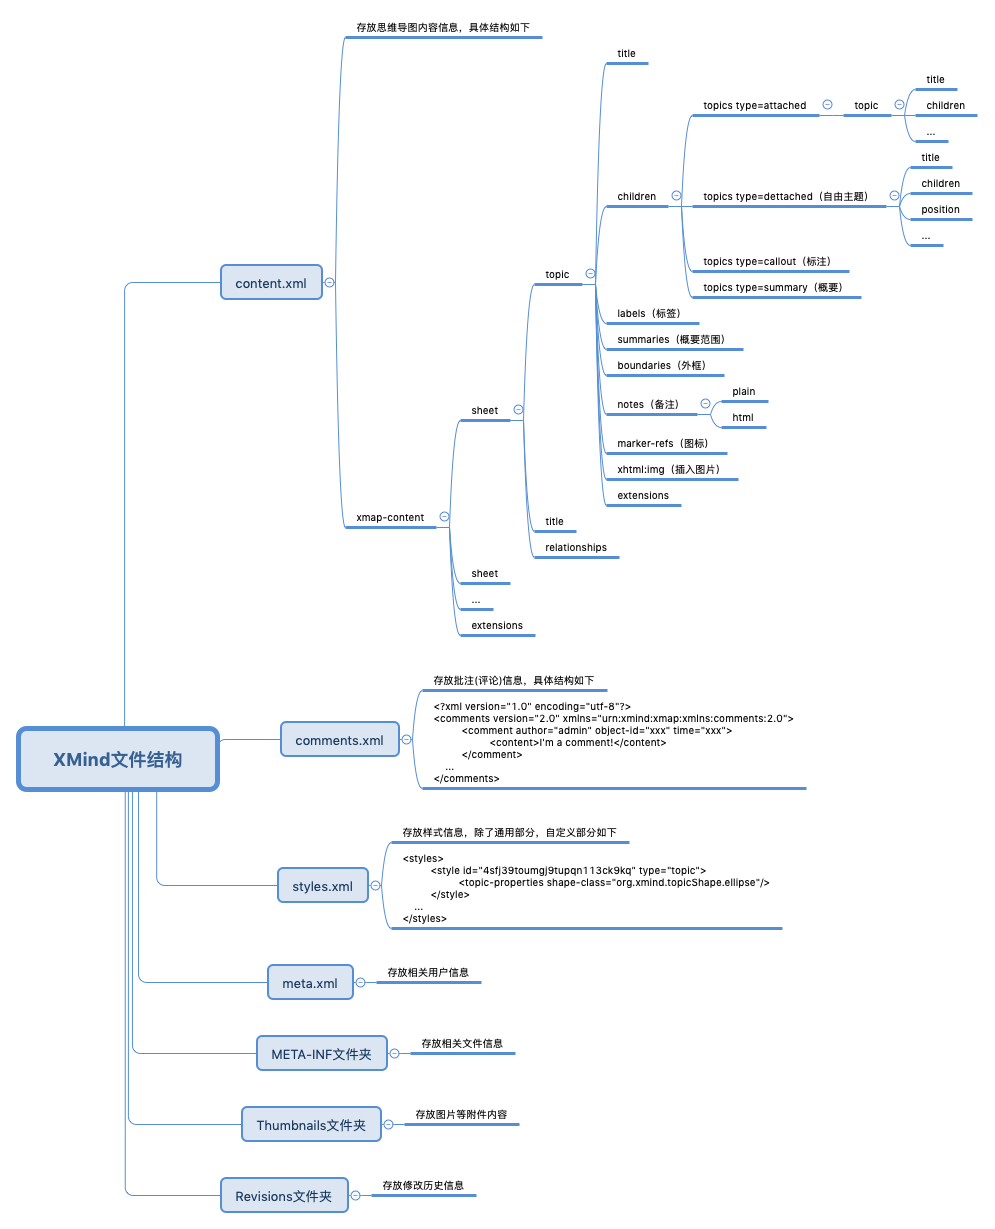 xmind file structure